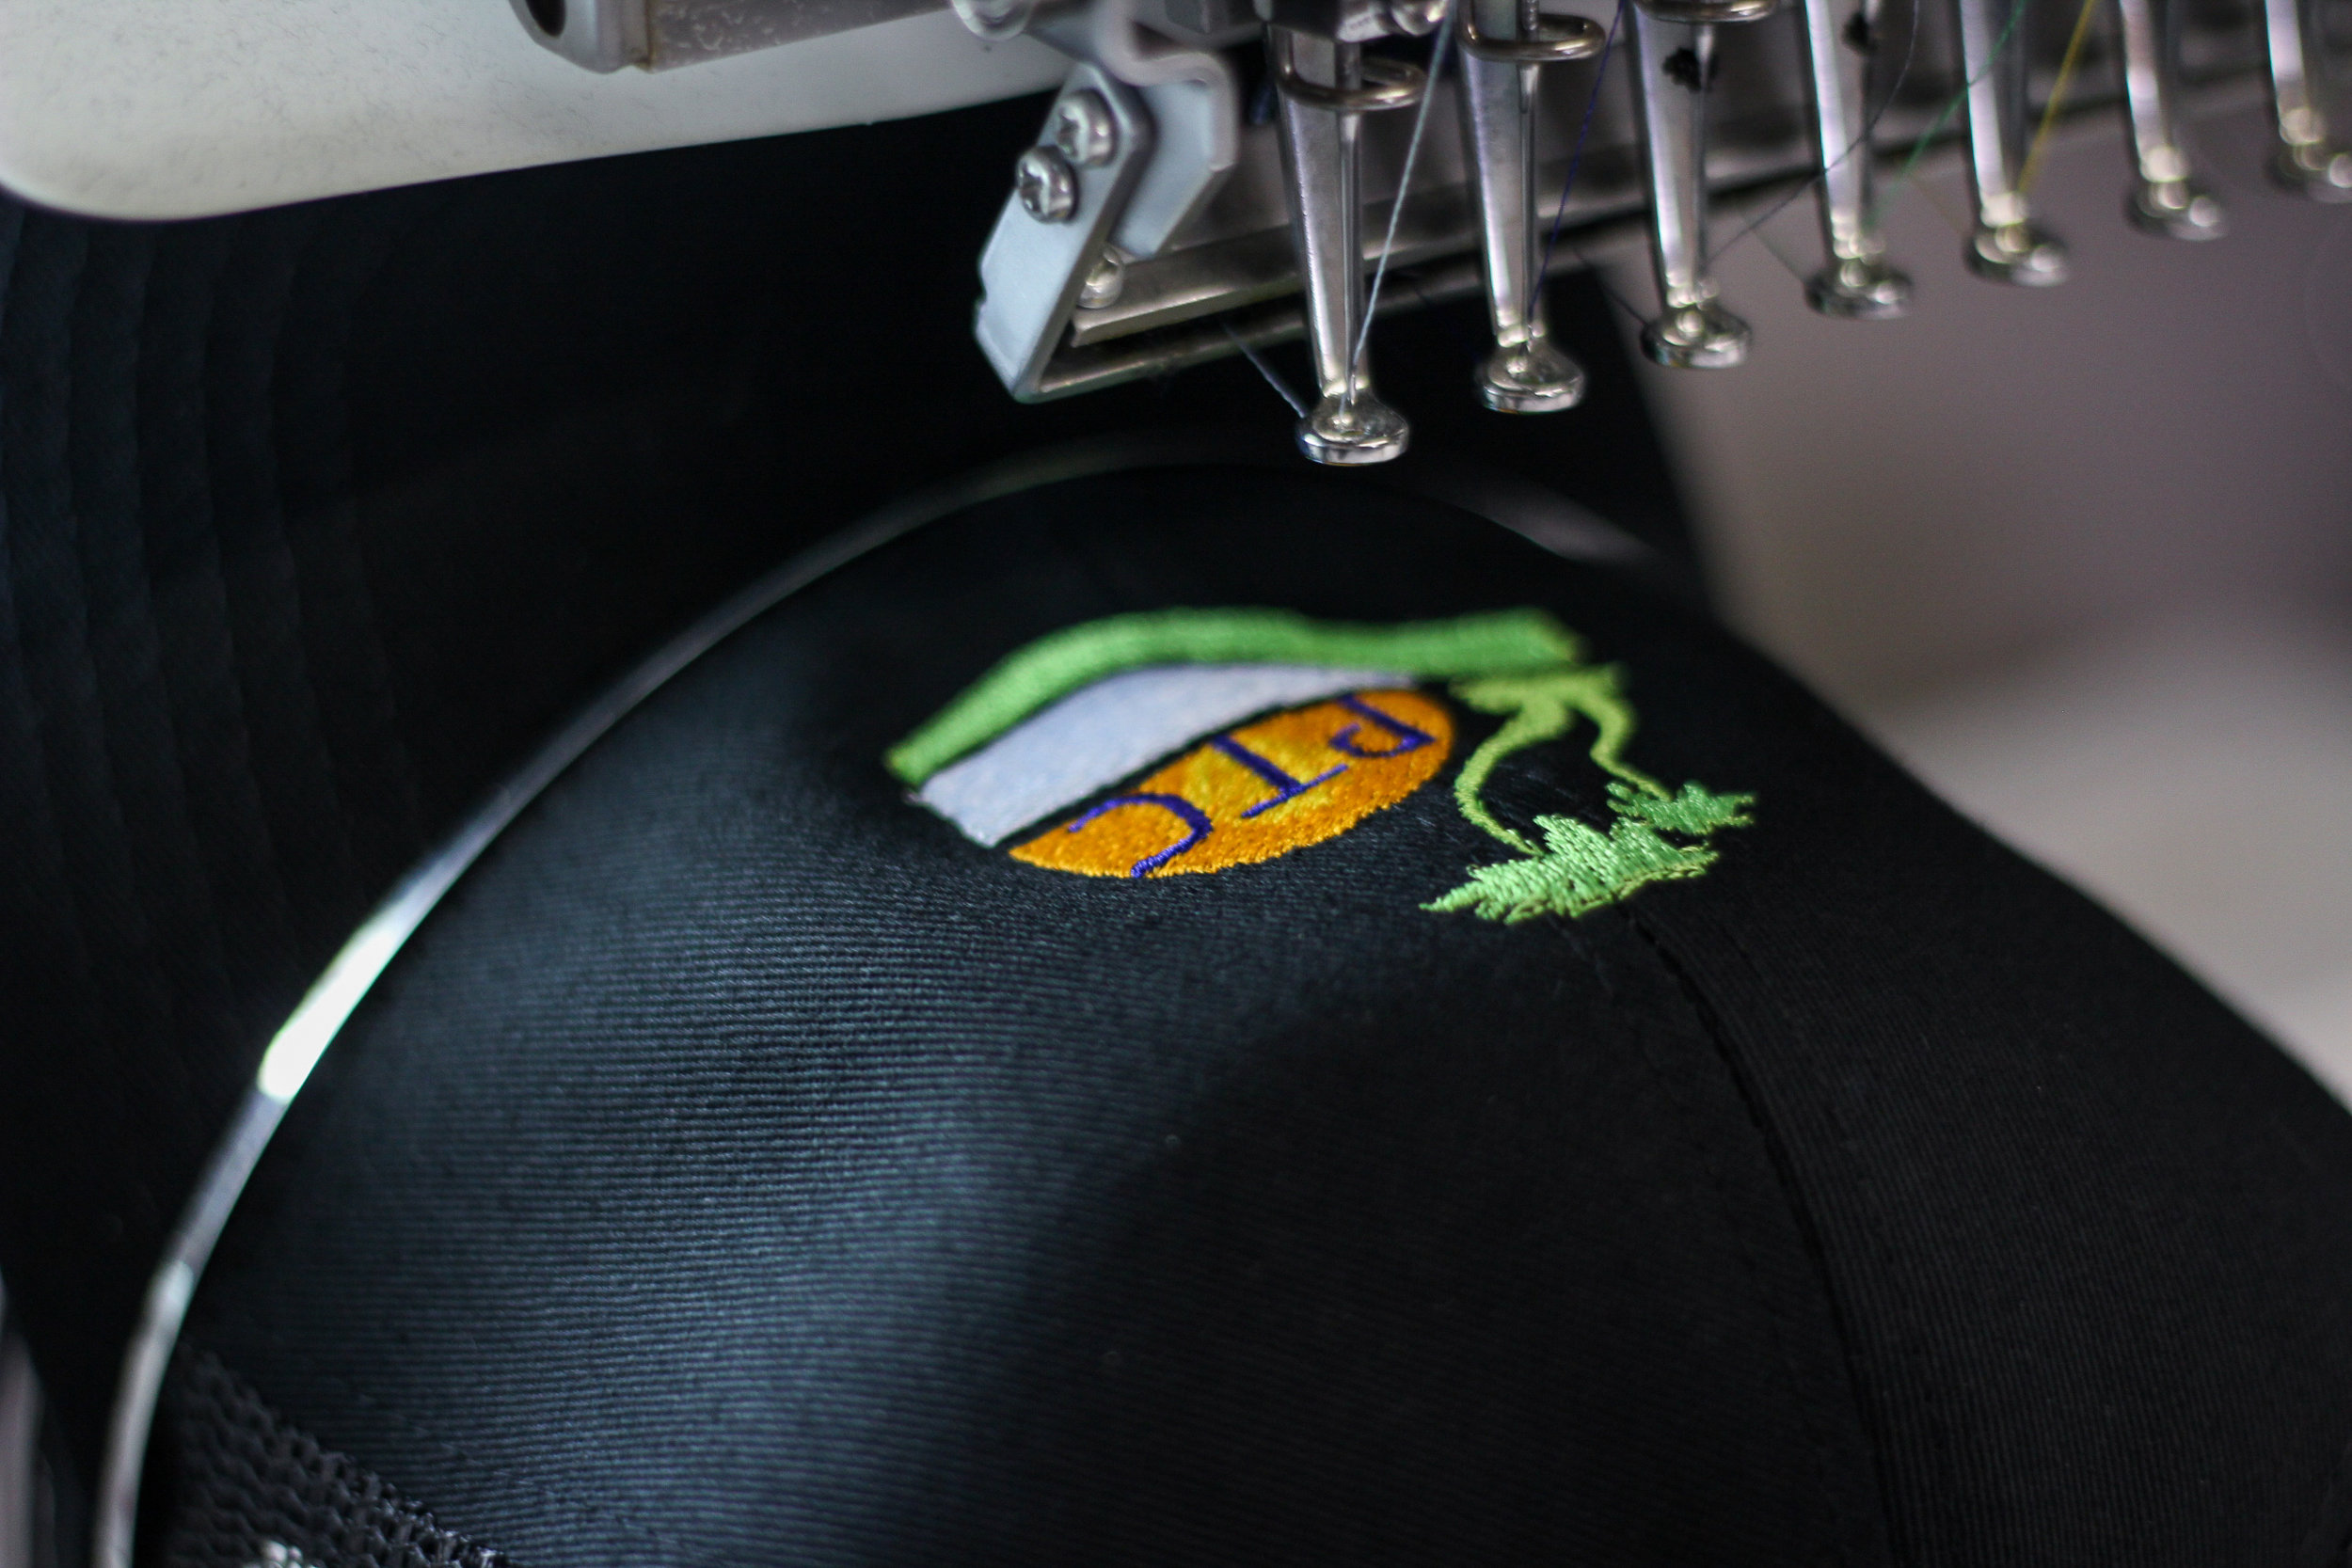 Details - every embroidery design takes careful thought and planning. we take the time necessary to ensure a great product is created every time.